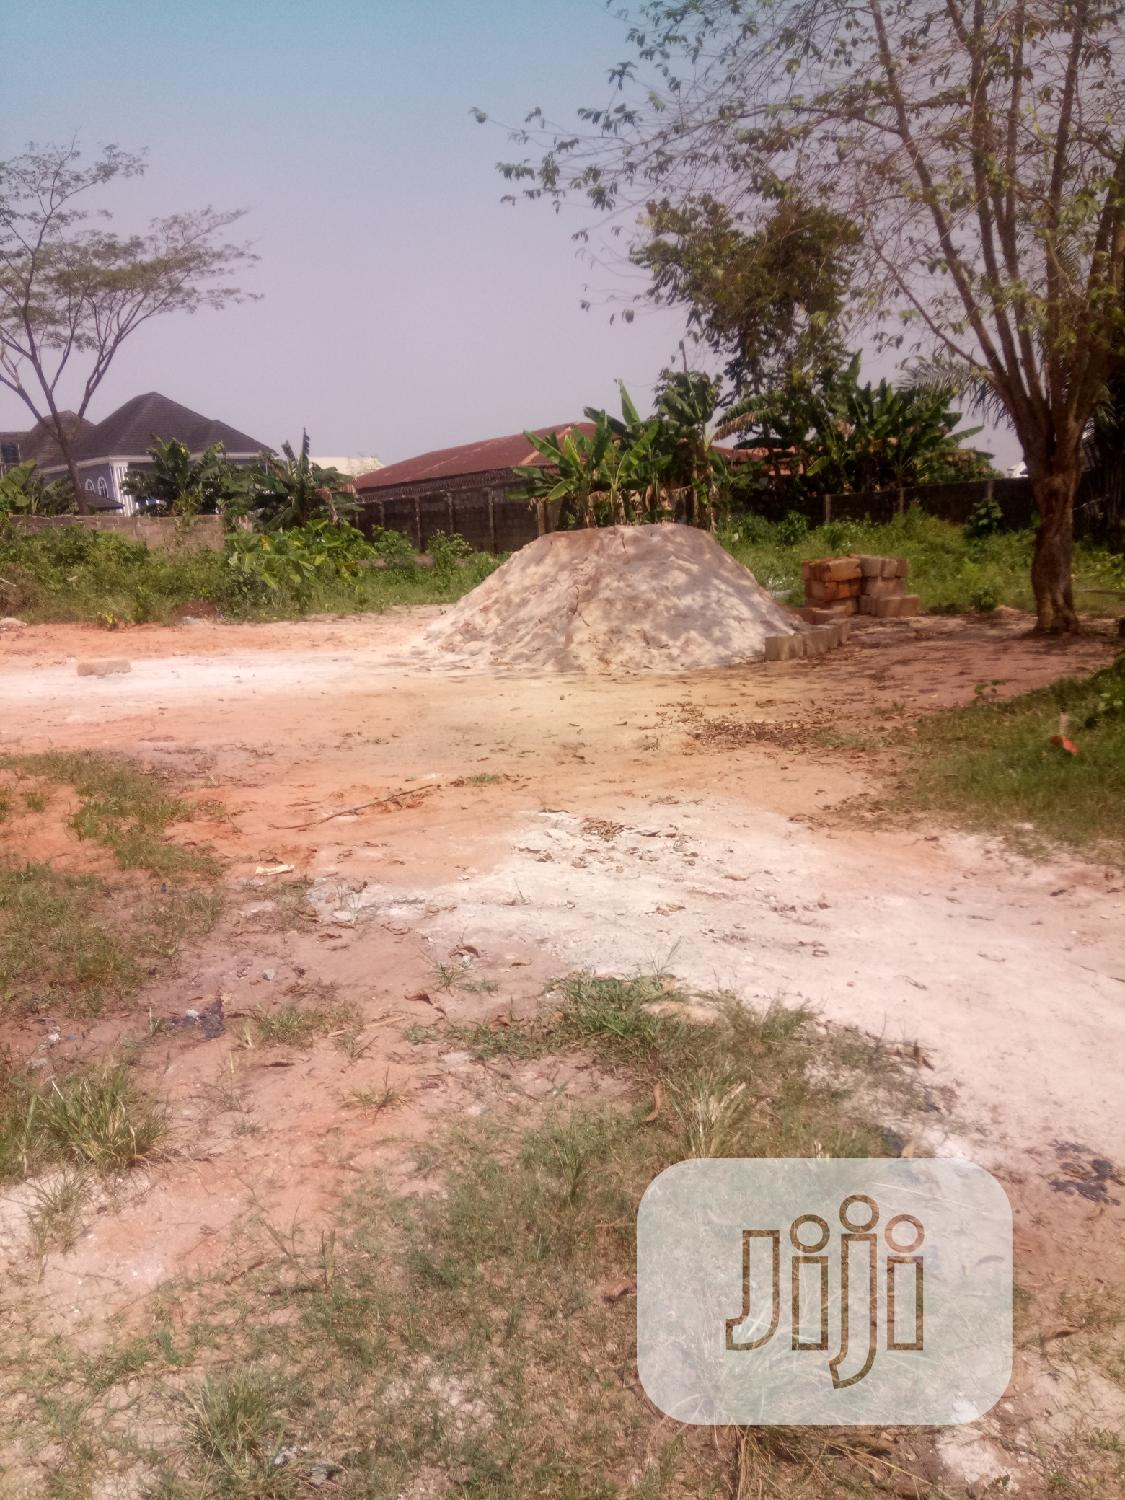 Genuine Plot of Land Measuring 100X100FT With Standard Fence for Sale